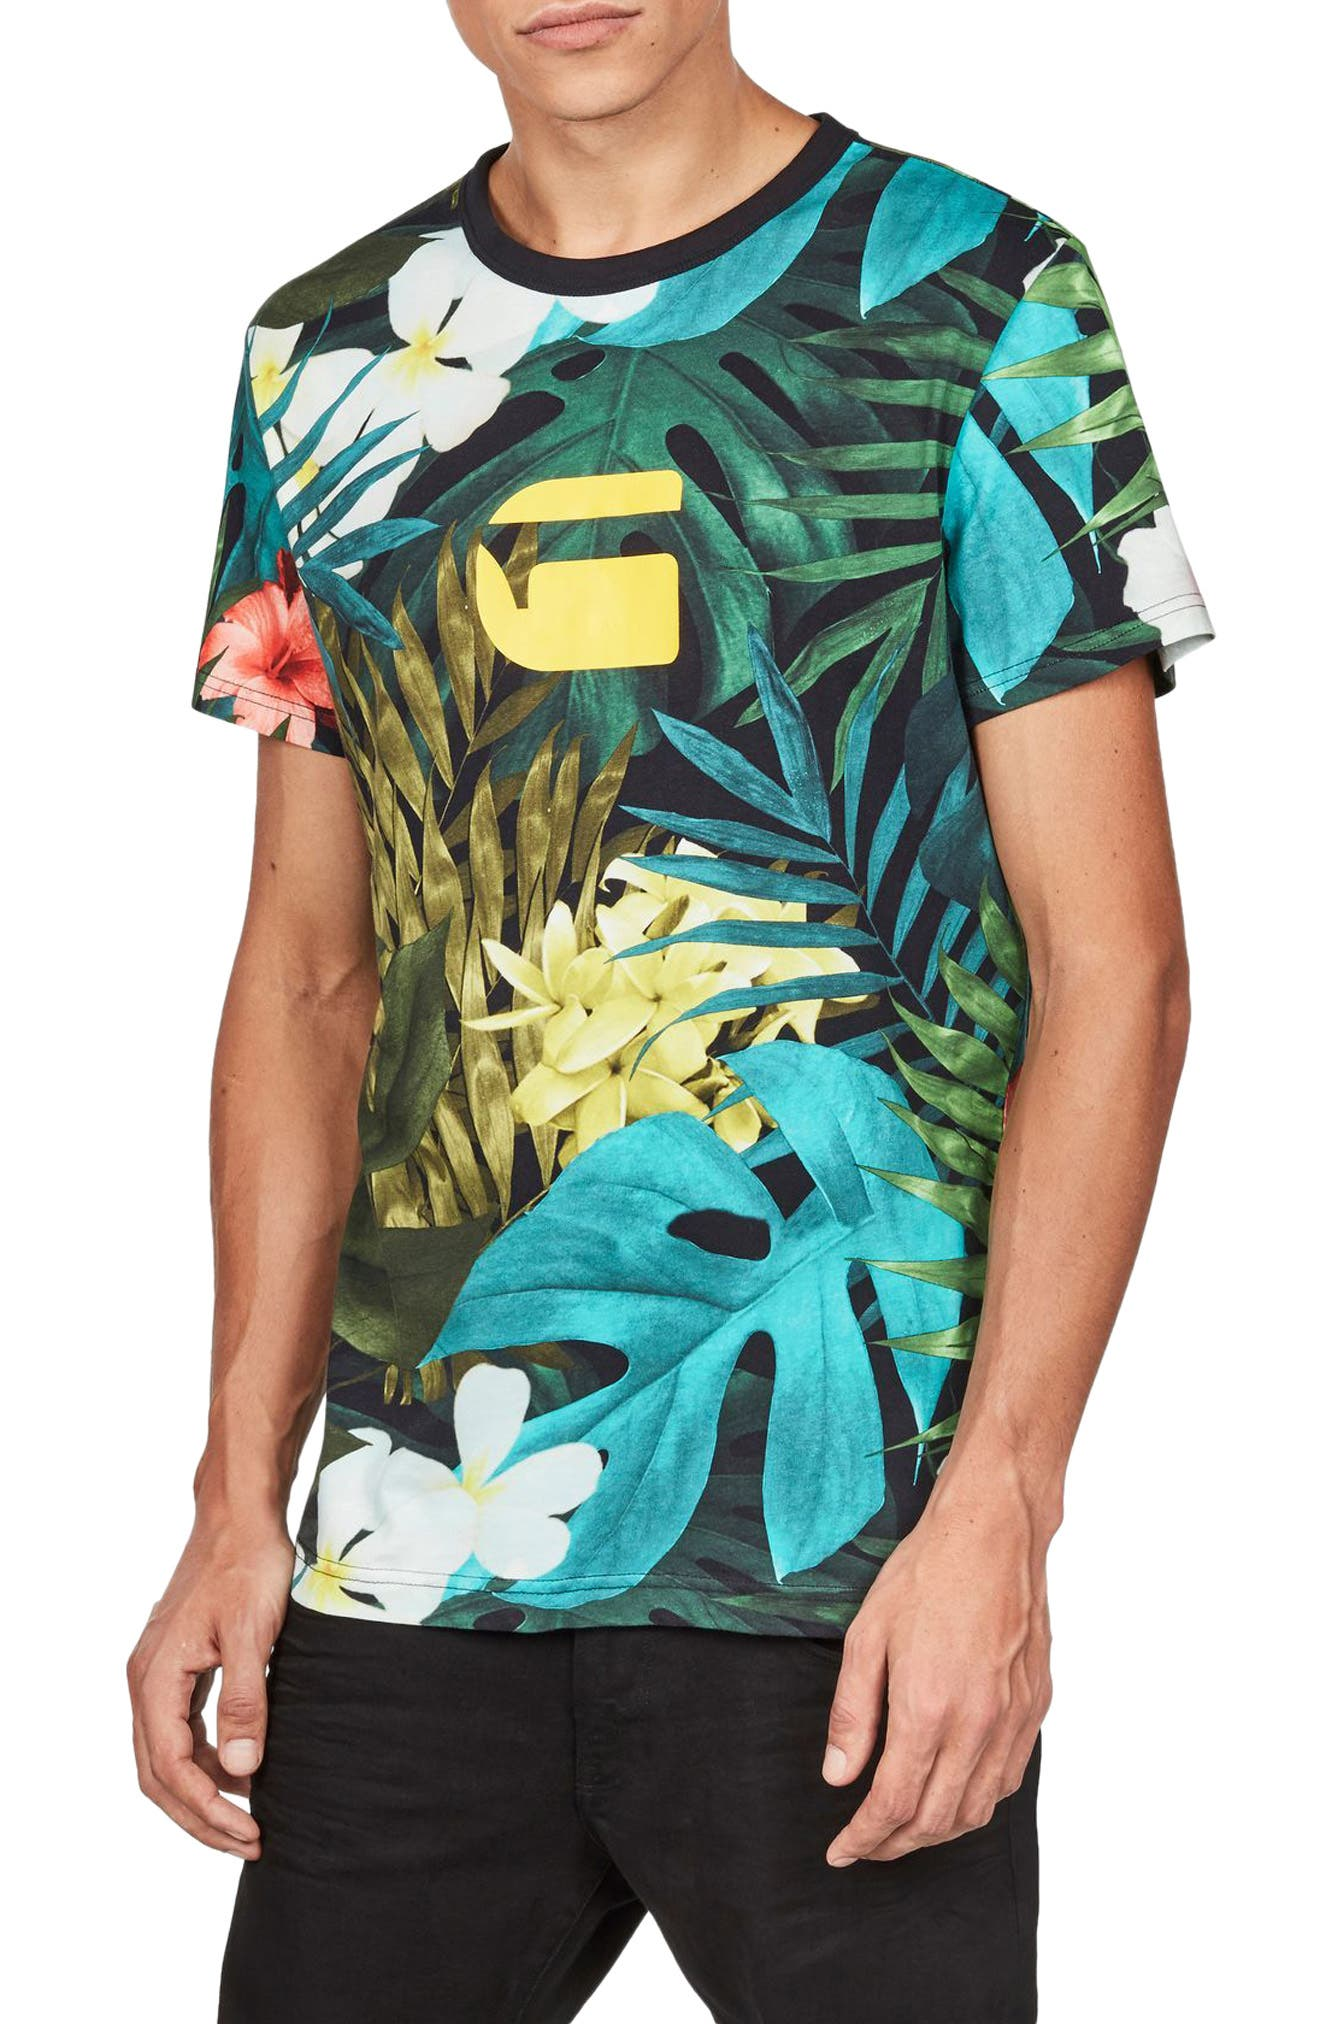 G-Star Raw Aloha Print Graphic T-Shirt